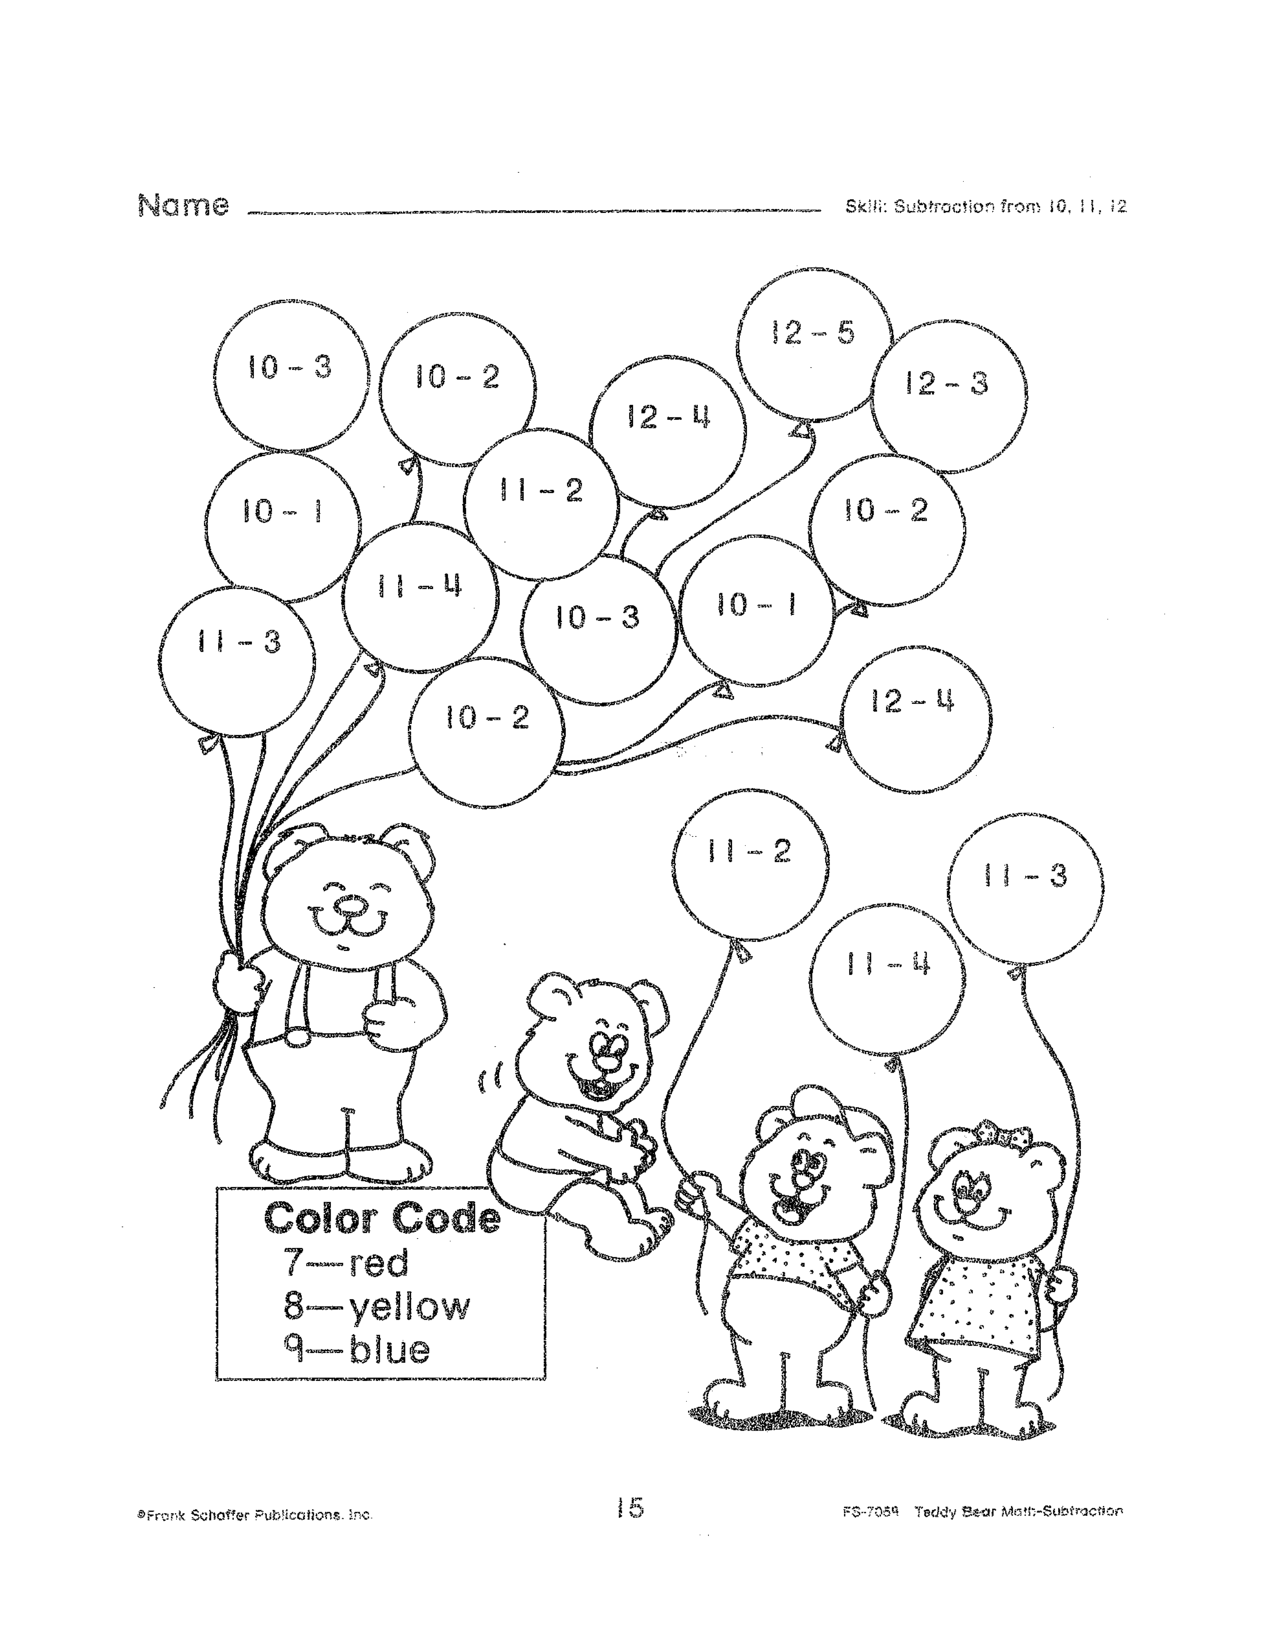 6th Grade Math Worksheets Printable – Worksheet for Math